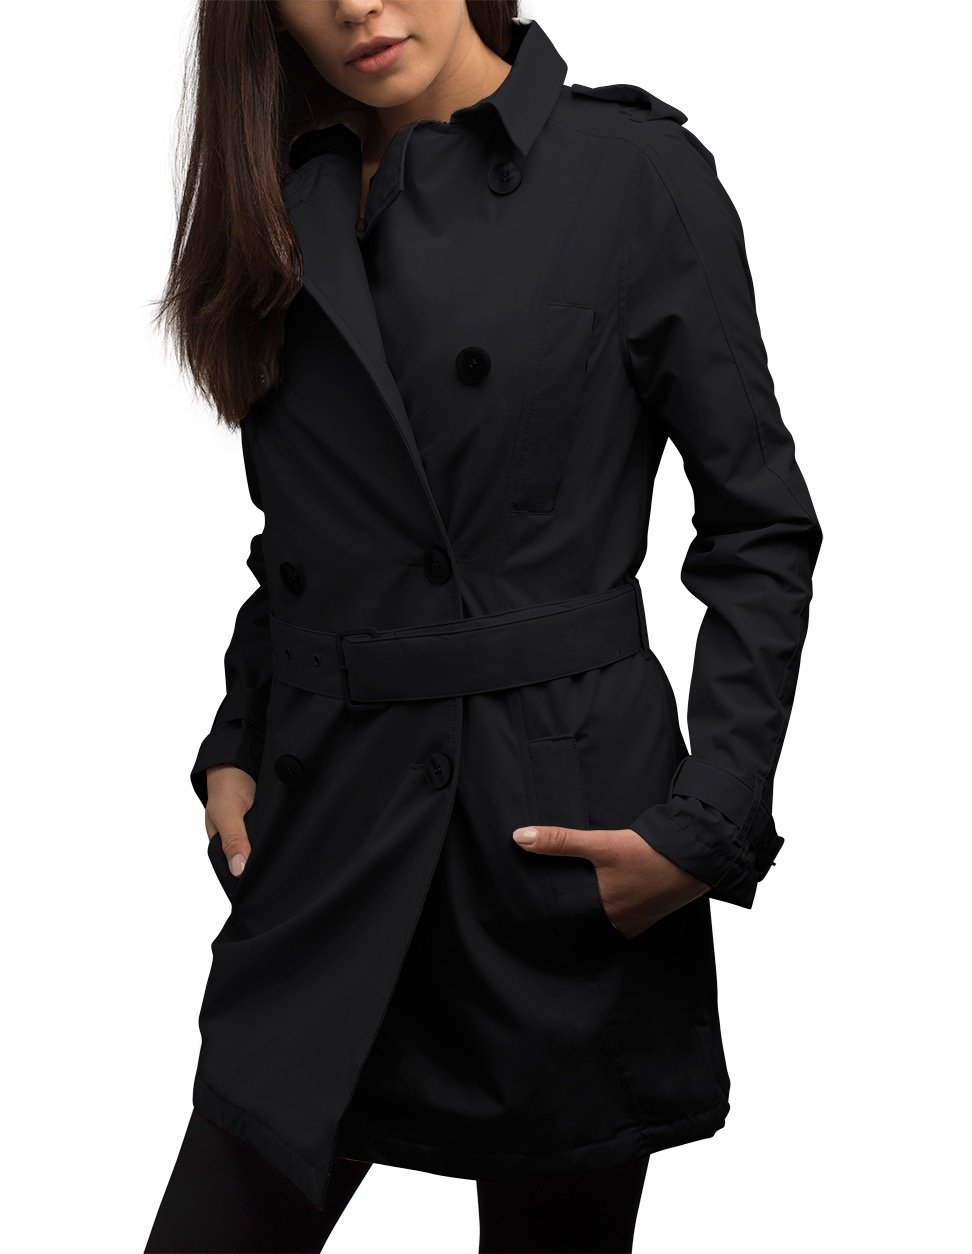 SCOTTeVEST Women's Trench Coat - 18 Pockets - Travel Clothing BLK L by SCOTTeVEST